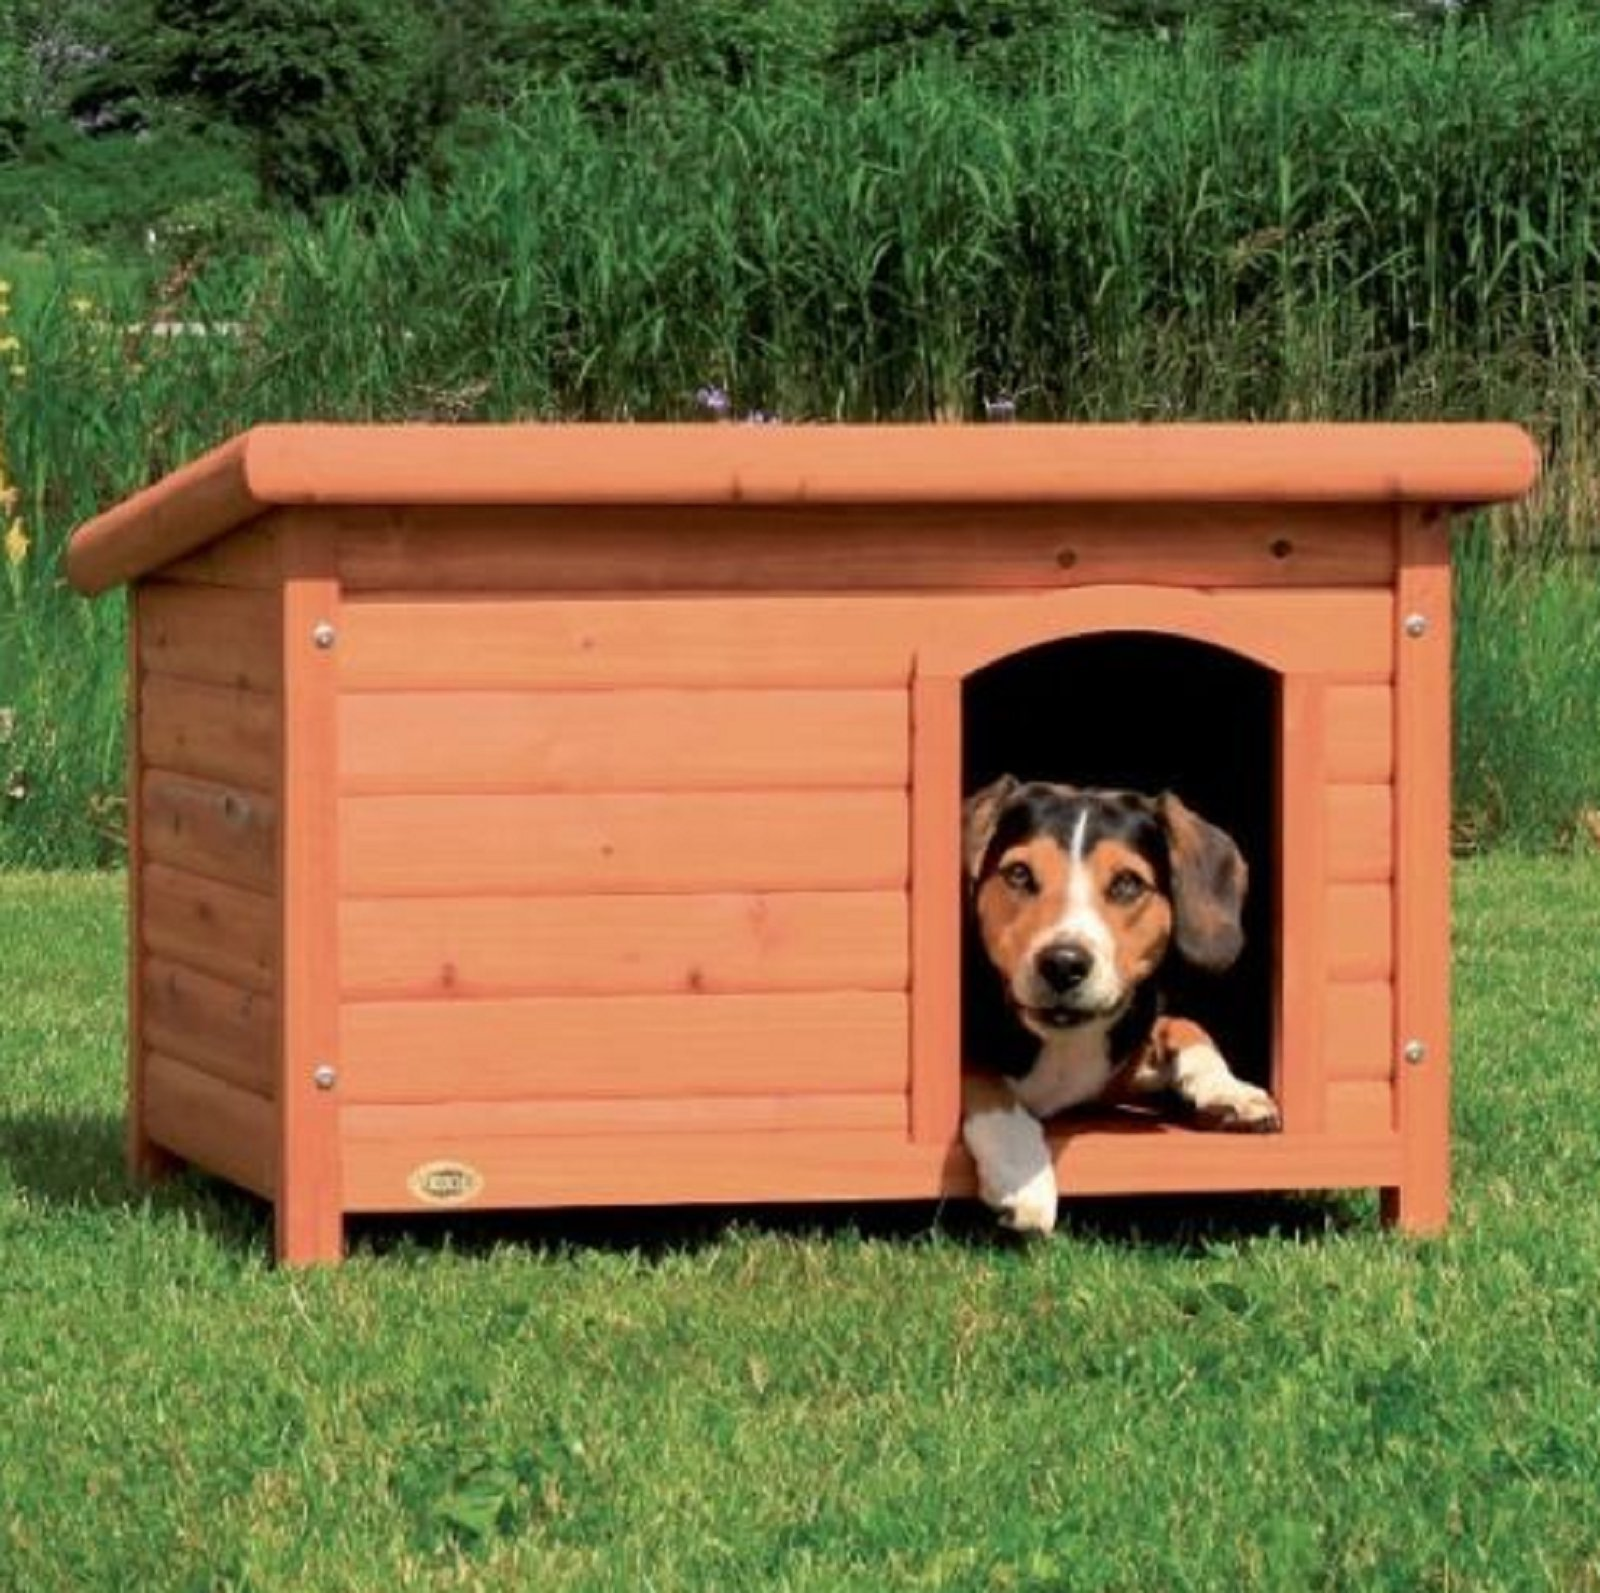 NEW! Outdoor Dog House Medium Pet Houses Weather Resistant Cabin Shelter Dogs Indoor